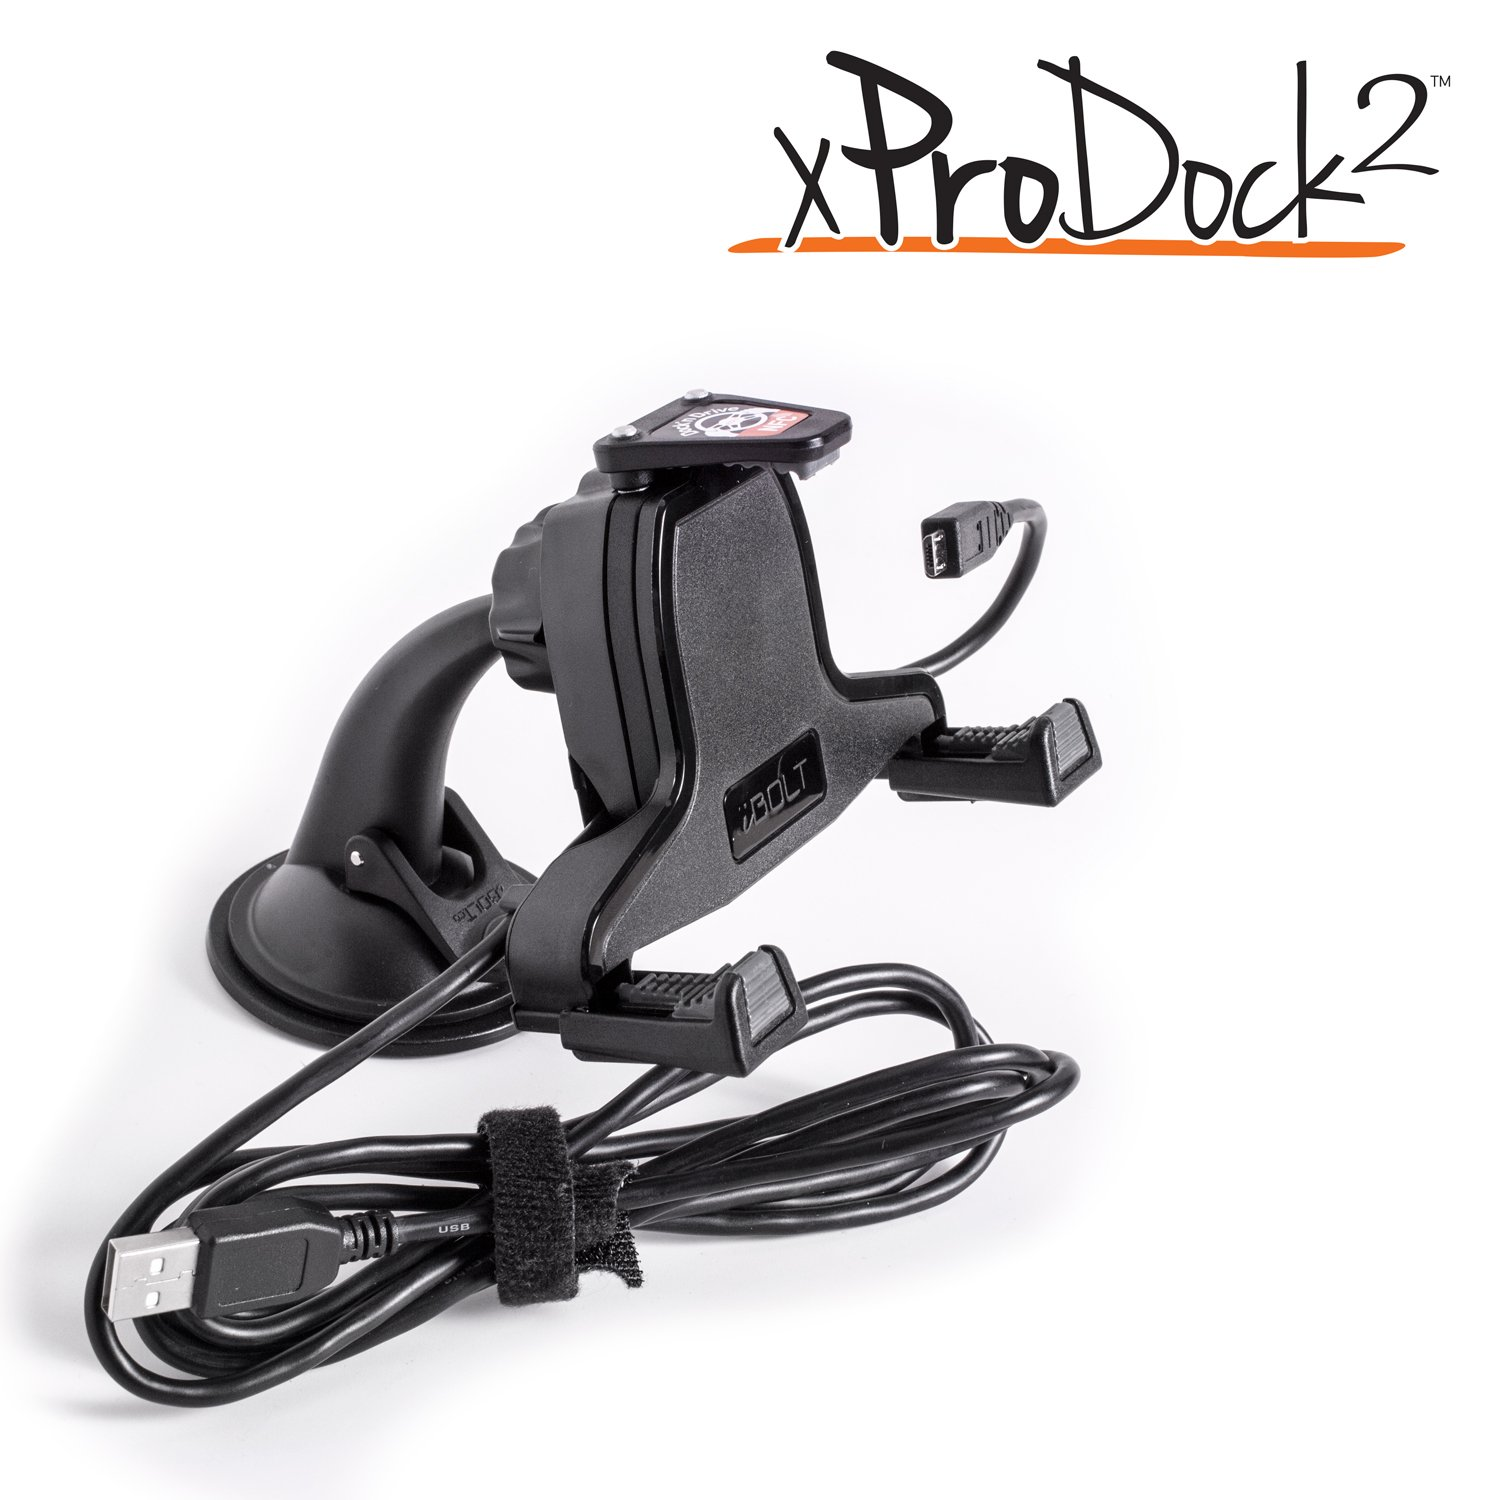 iBOLT xProDock NFC Connect Kit car mount / Holder with New NFC integrated Latch works with Samsung Galaxy S7 , S7 edge , S6 / S6 edge / S5 / S4, Note 5 / Note 4, HTC, Google, LG, and Sony handsets.